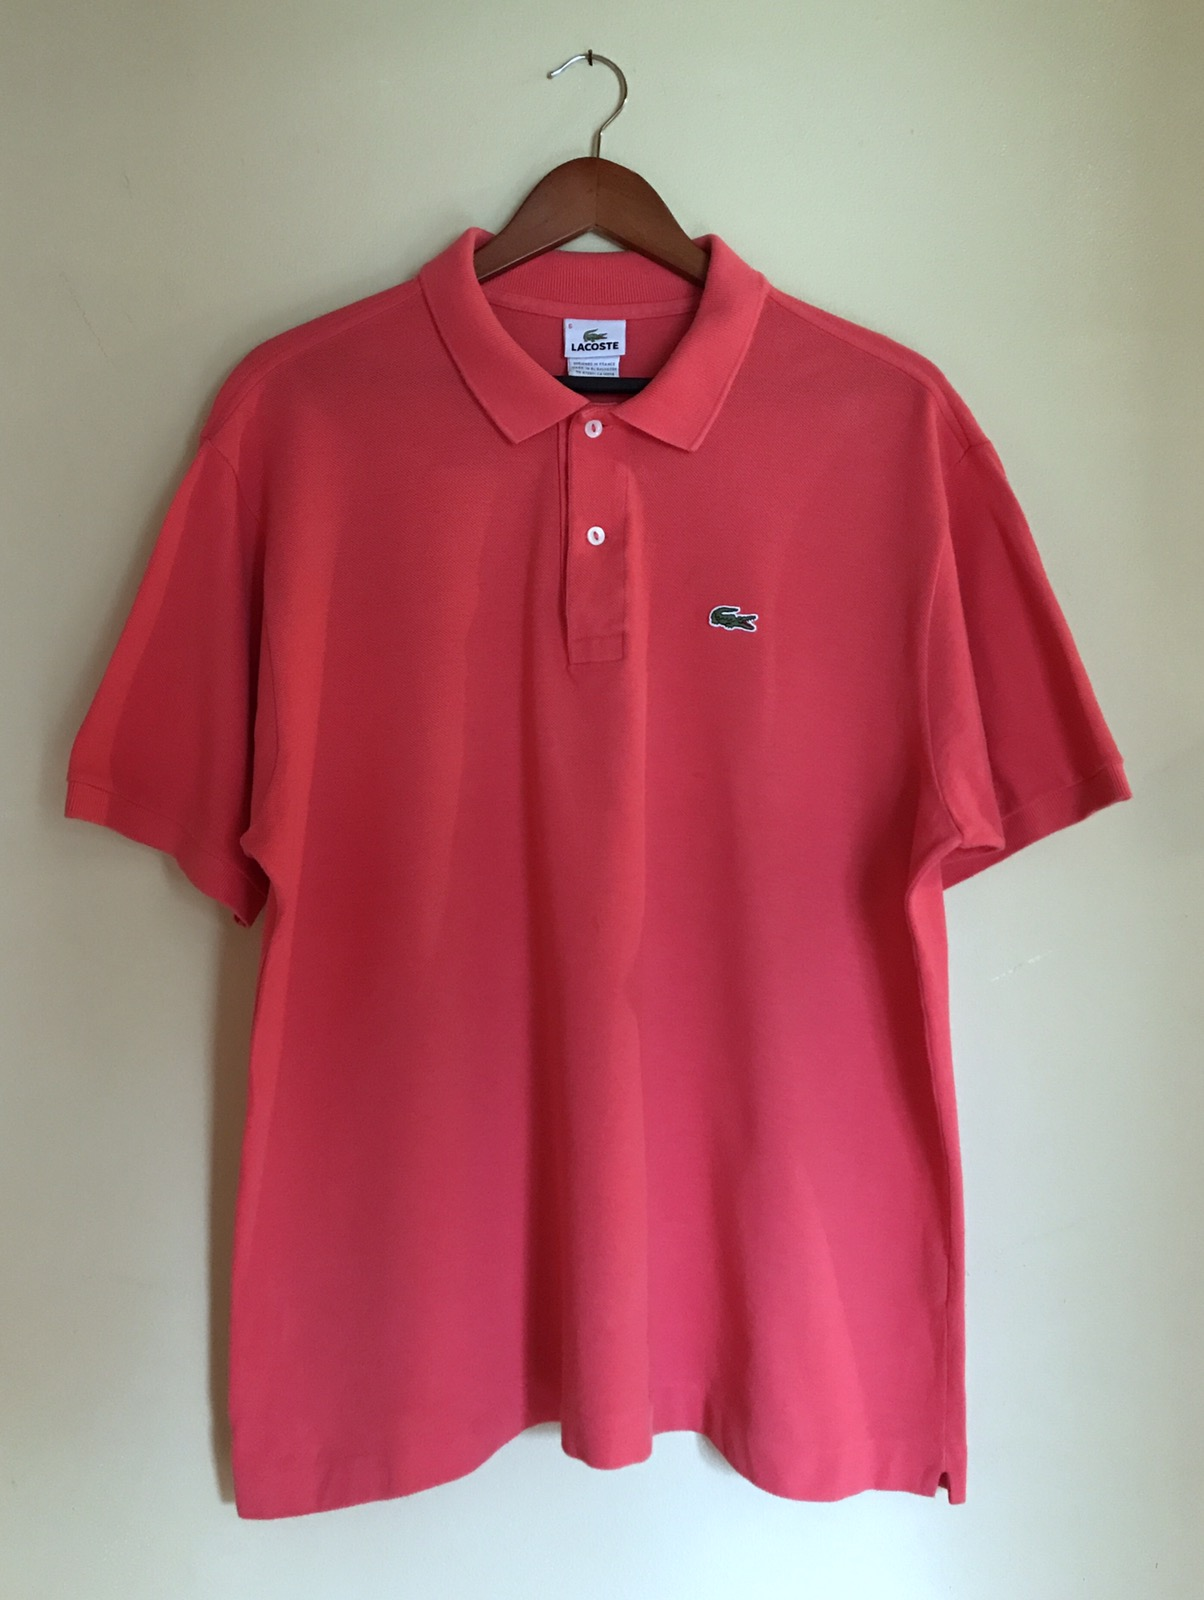 Lacoste Lacoste Rose Red Pink Polo Collar Short Sleeved Shirt Size 6